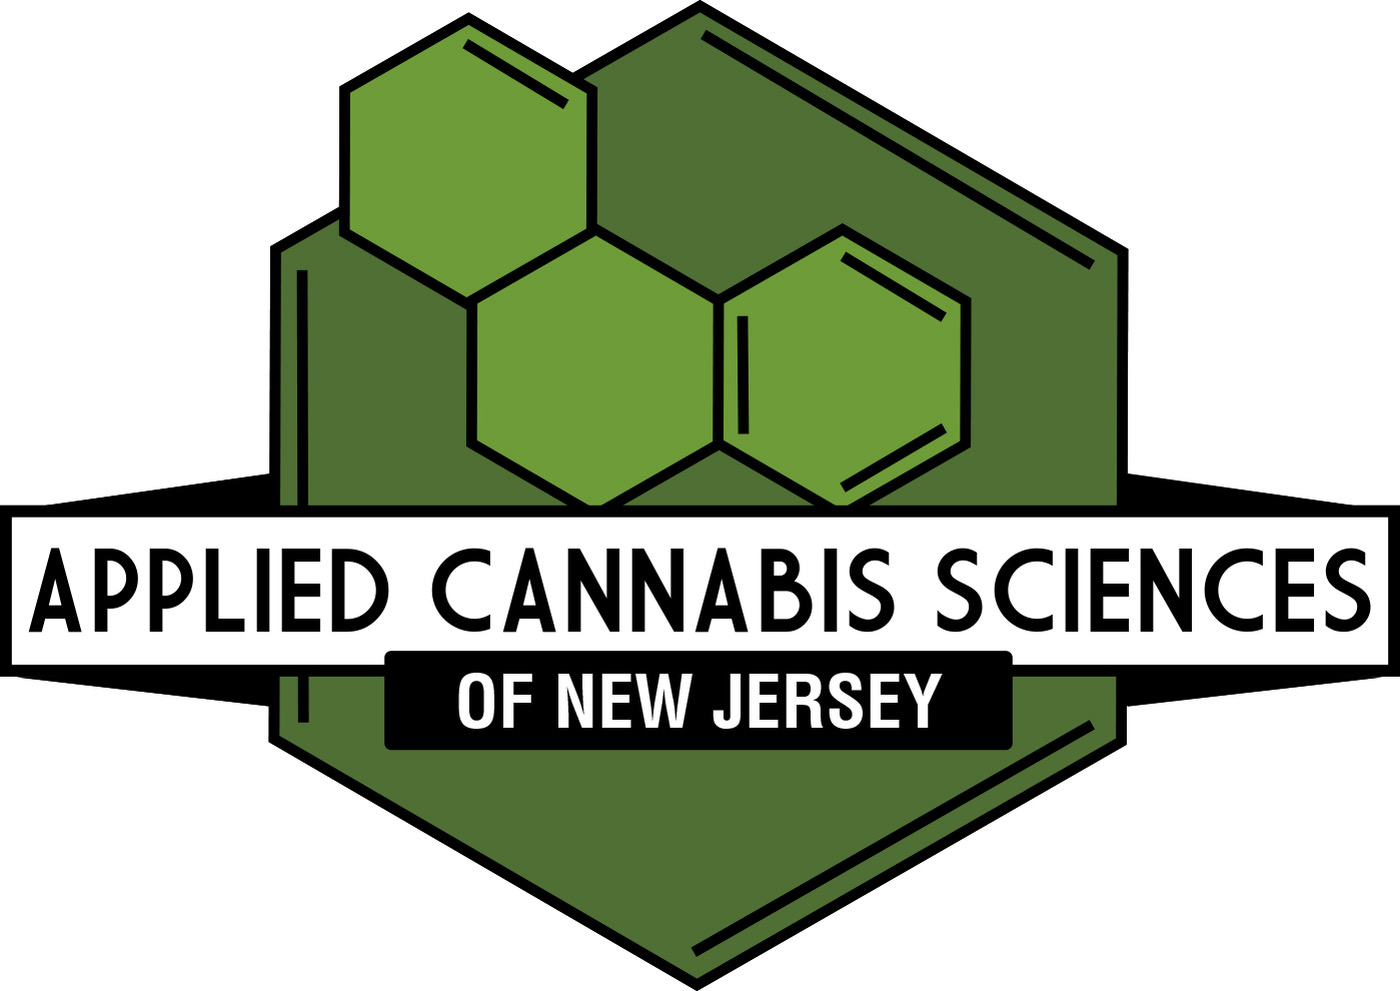 Applied Cannabis Sciences